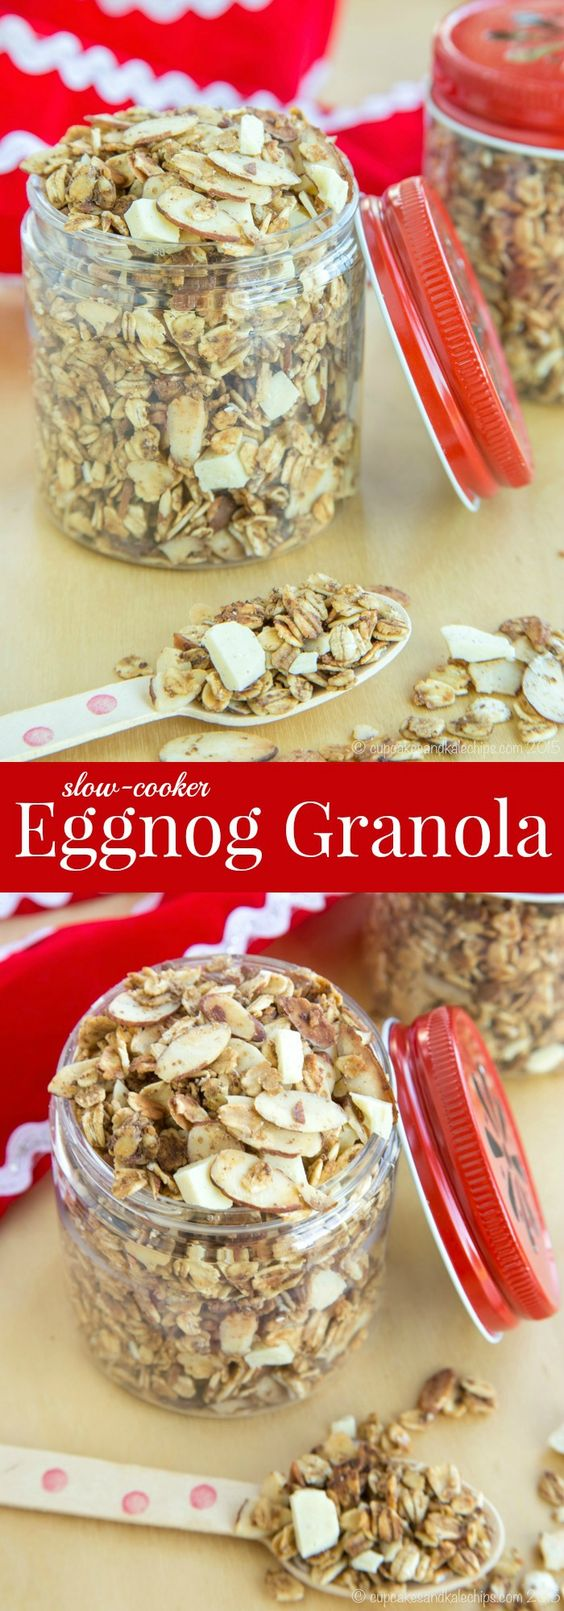 Cooker Eggnog Granola - with hints of nutmeg, cinnamon, and nutmeg ...